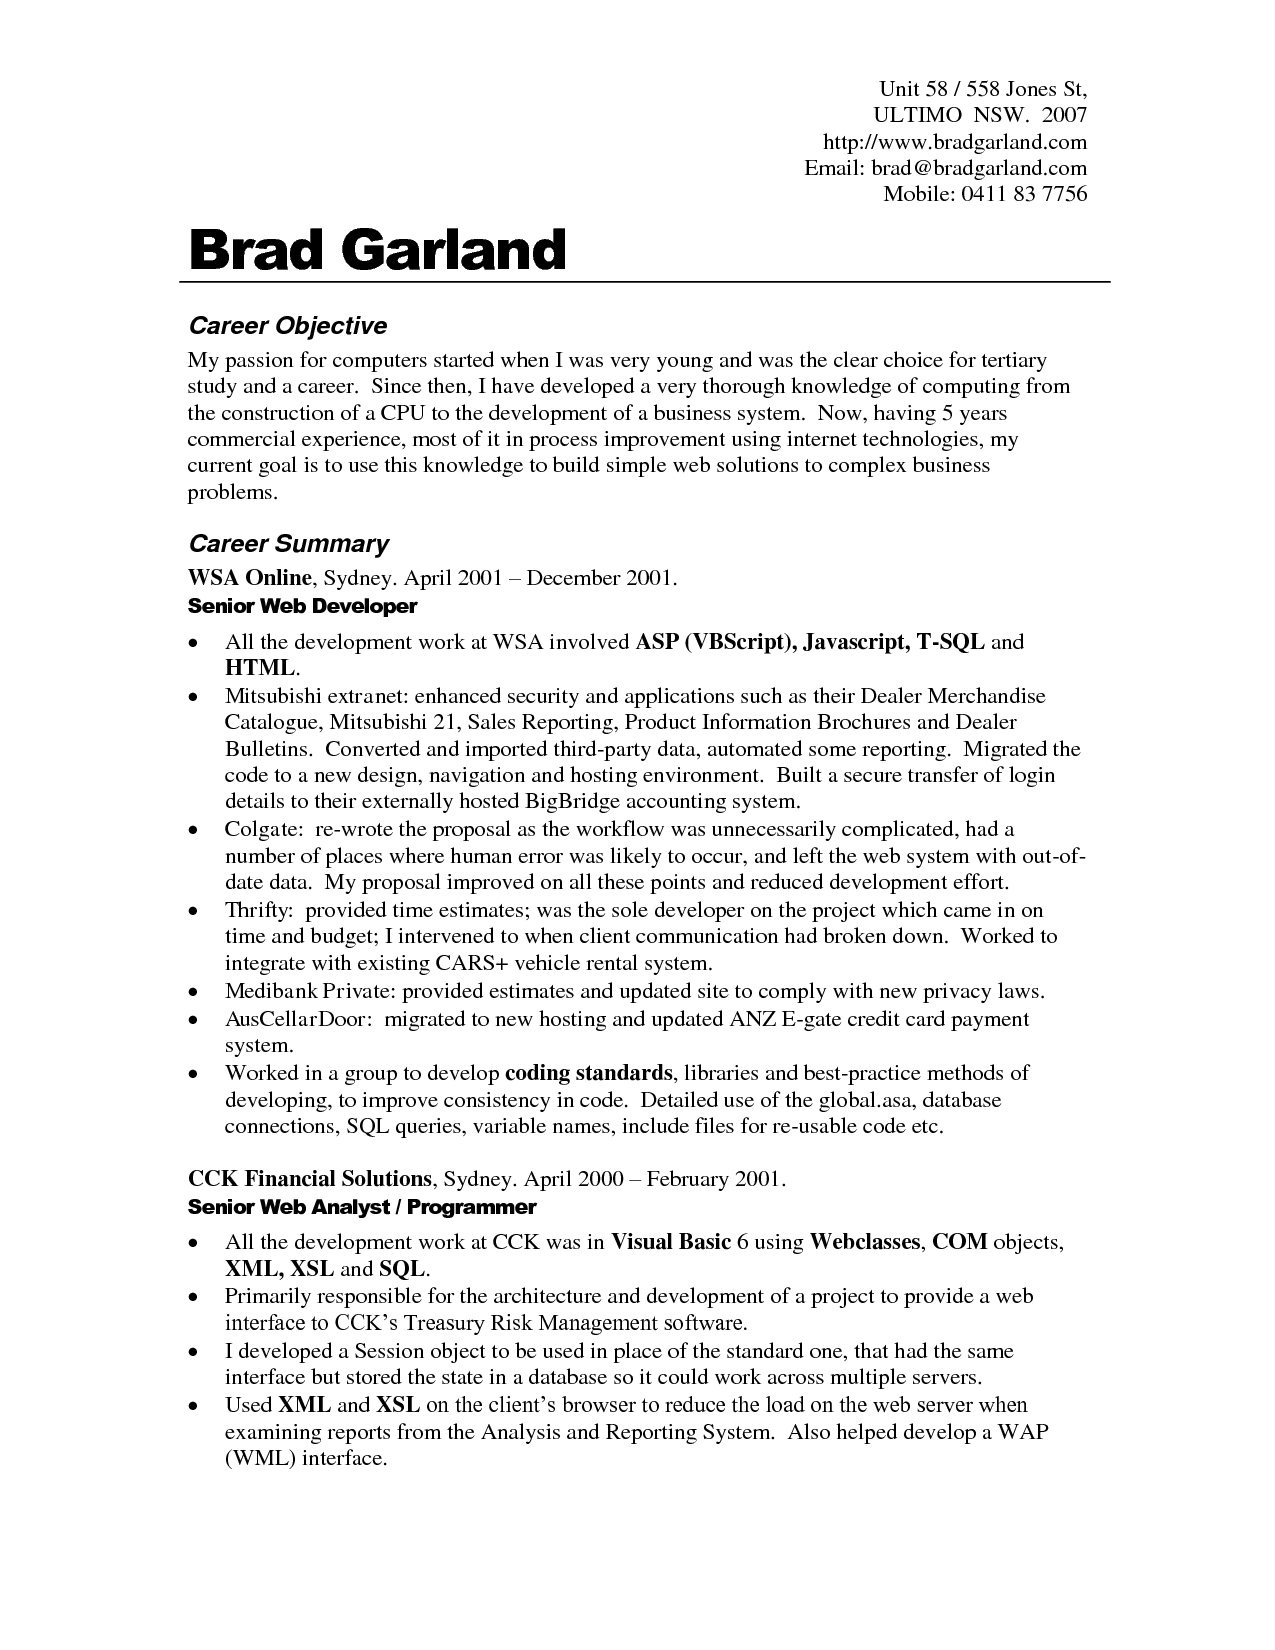 General Resume Objective Statements Resume Objectives Examples Best Templateresume Objective Examples